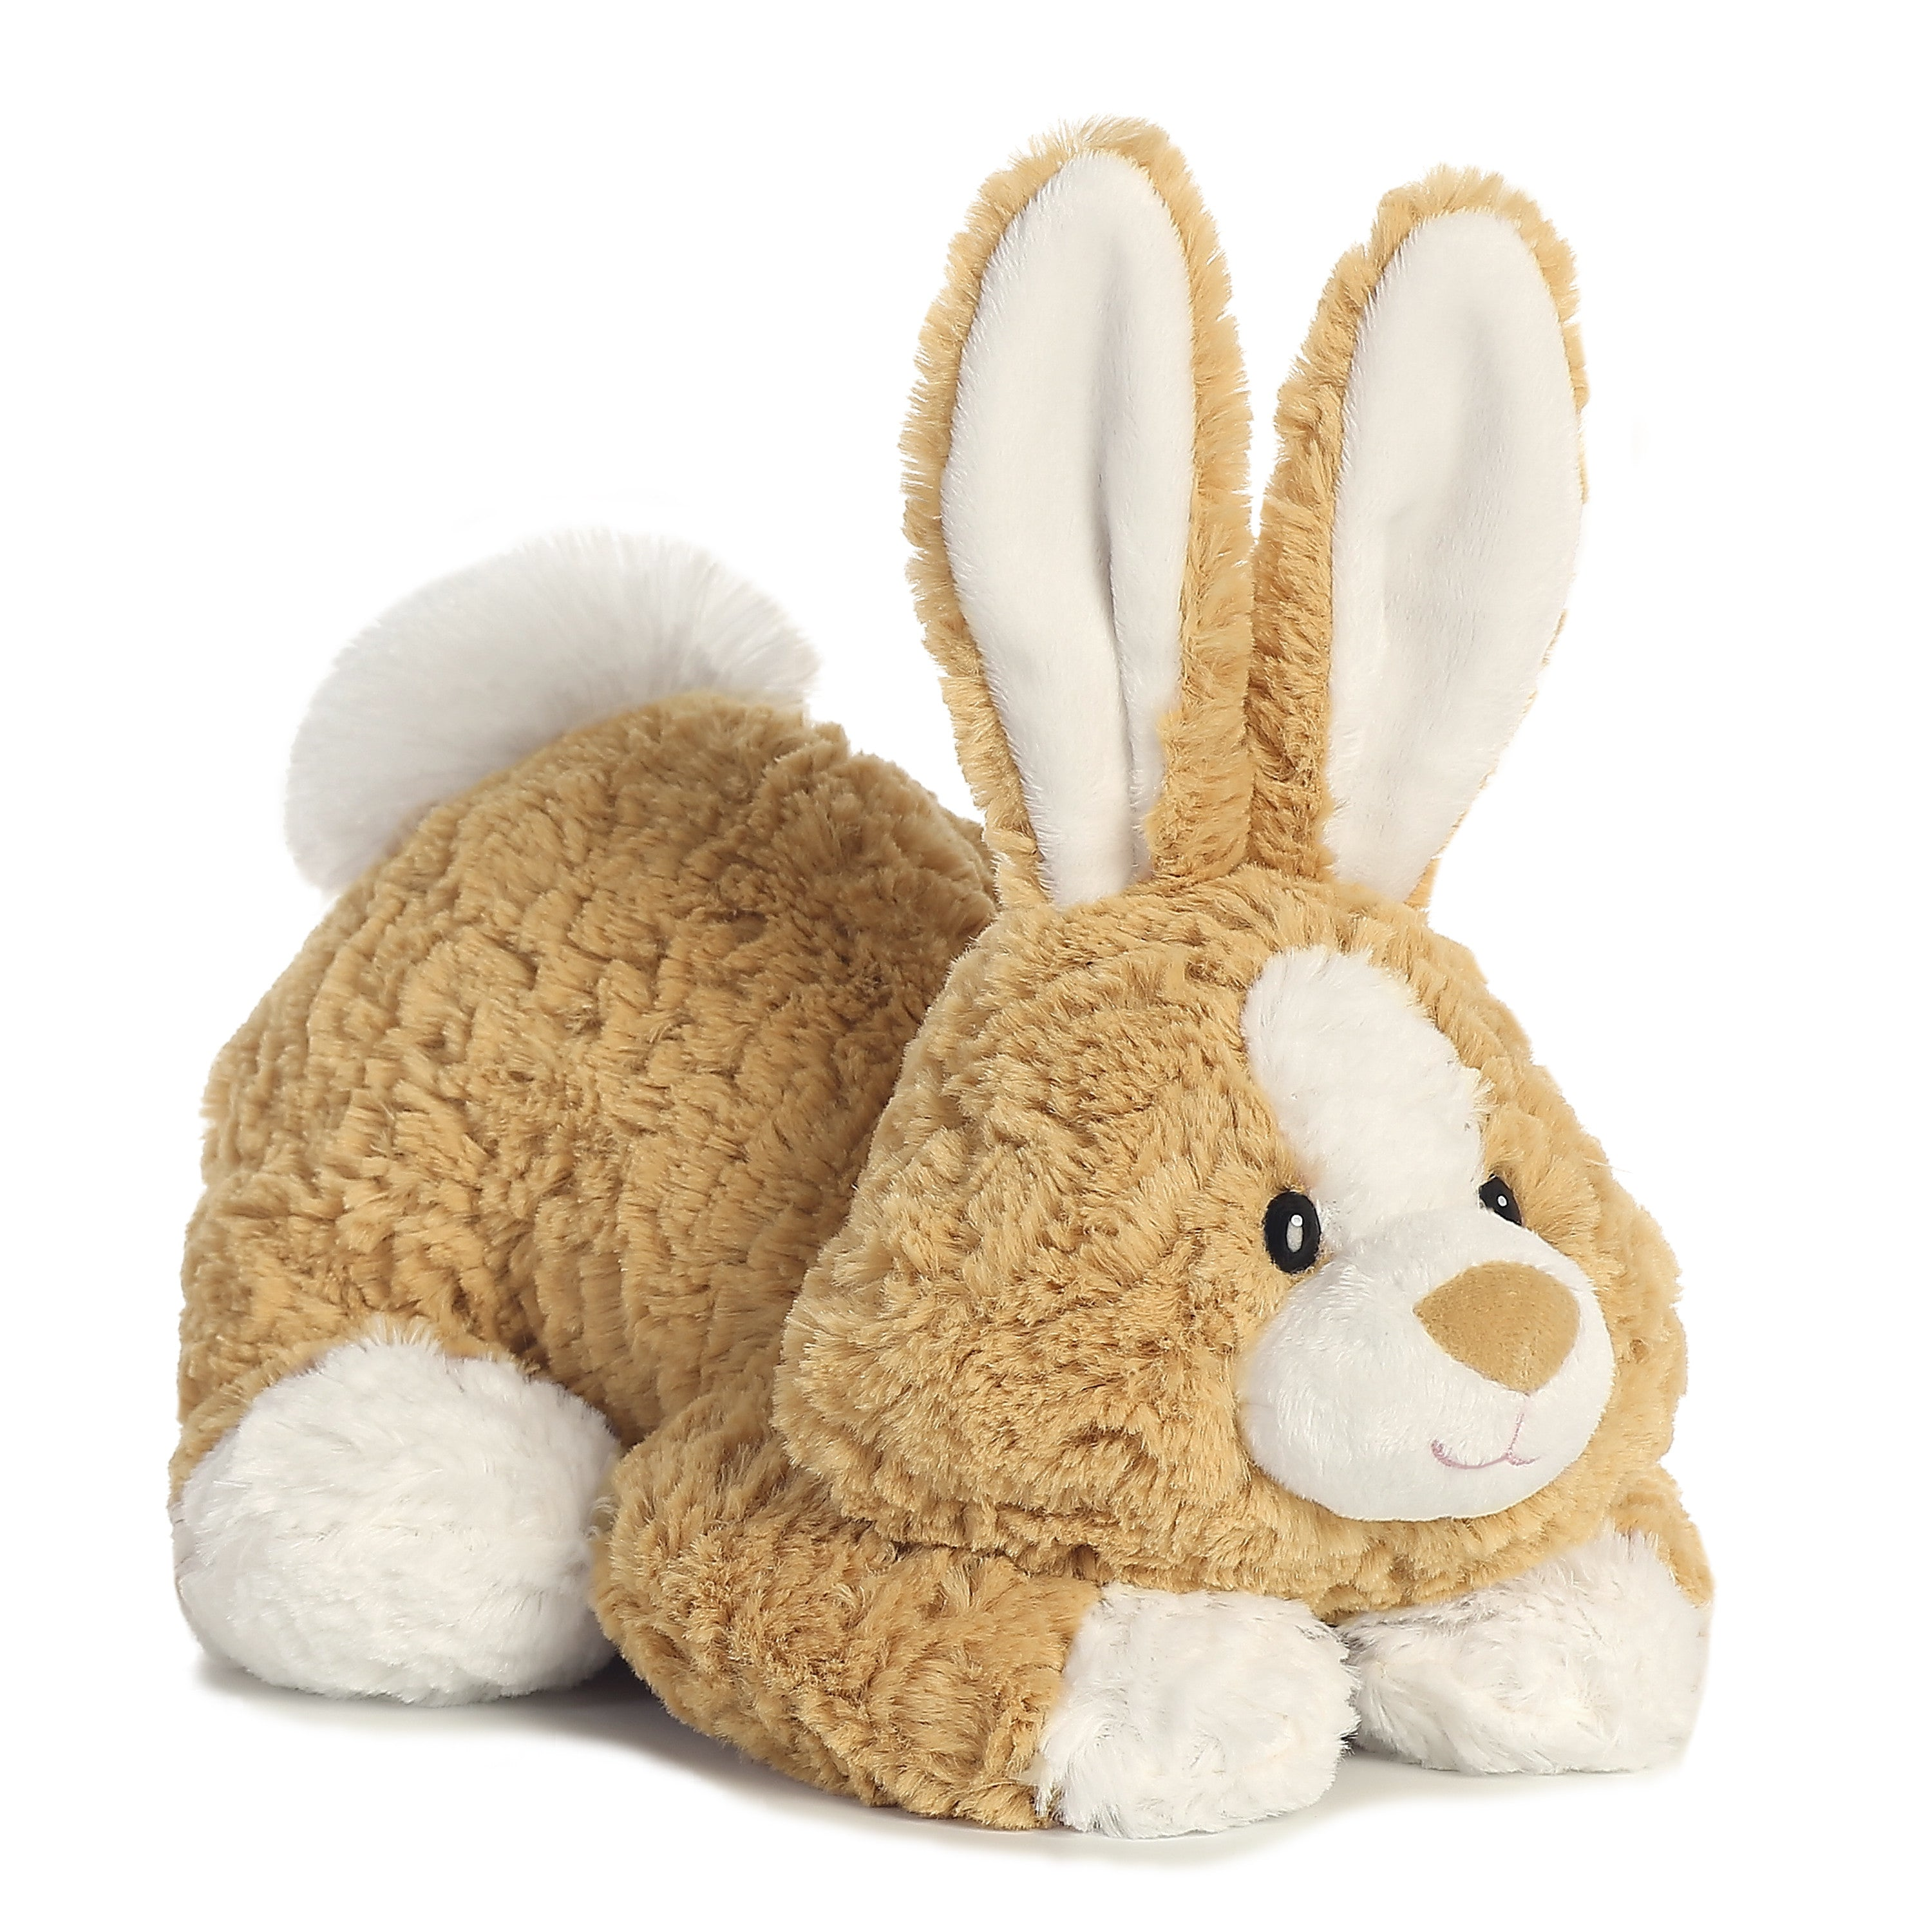 Soft Two-toned Bunny Toy